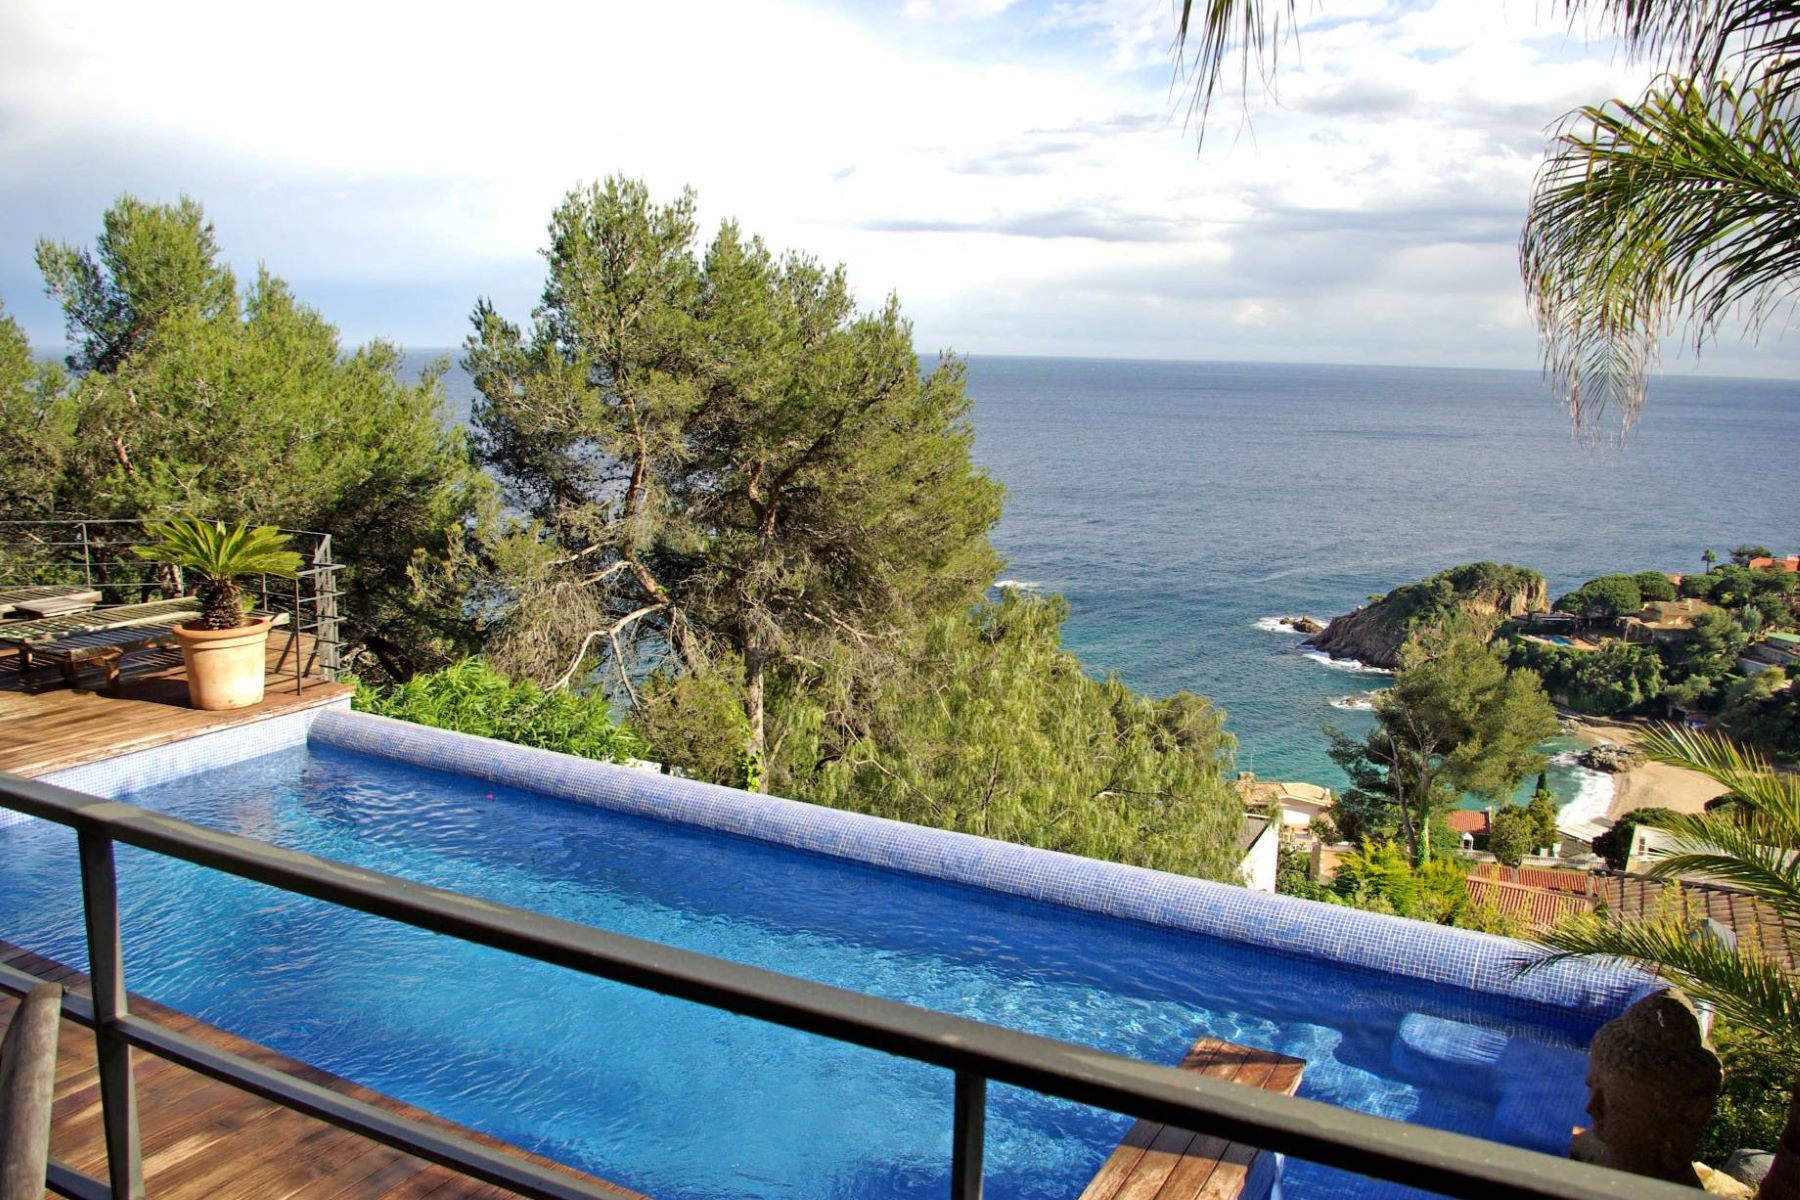 Single Family Home for Sale at Modern villa with panoramic sea views Other Spain, Other Areas In Spain, 17300 Spain